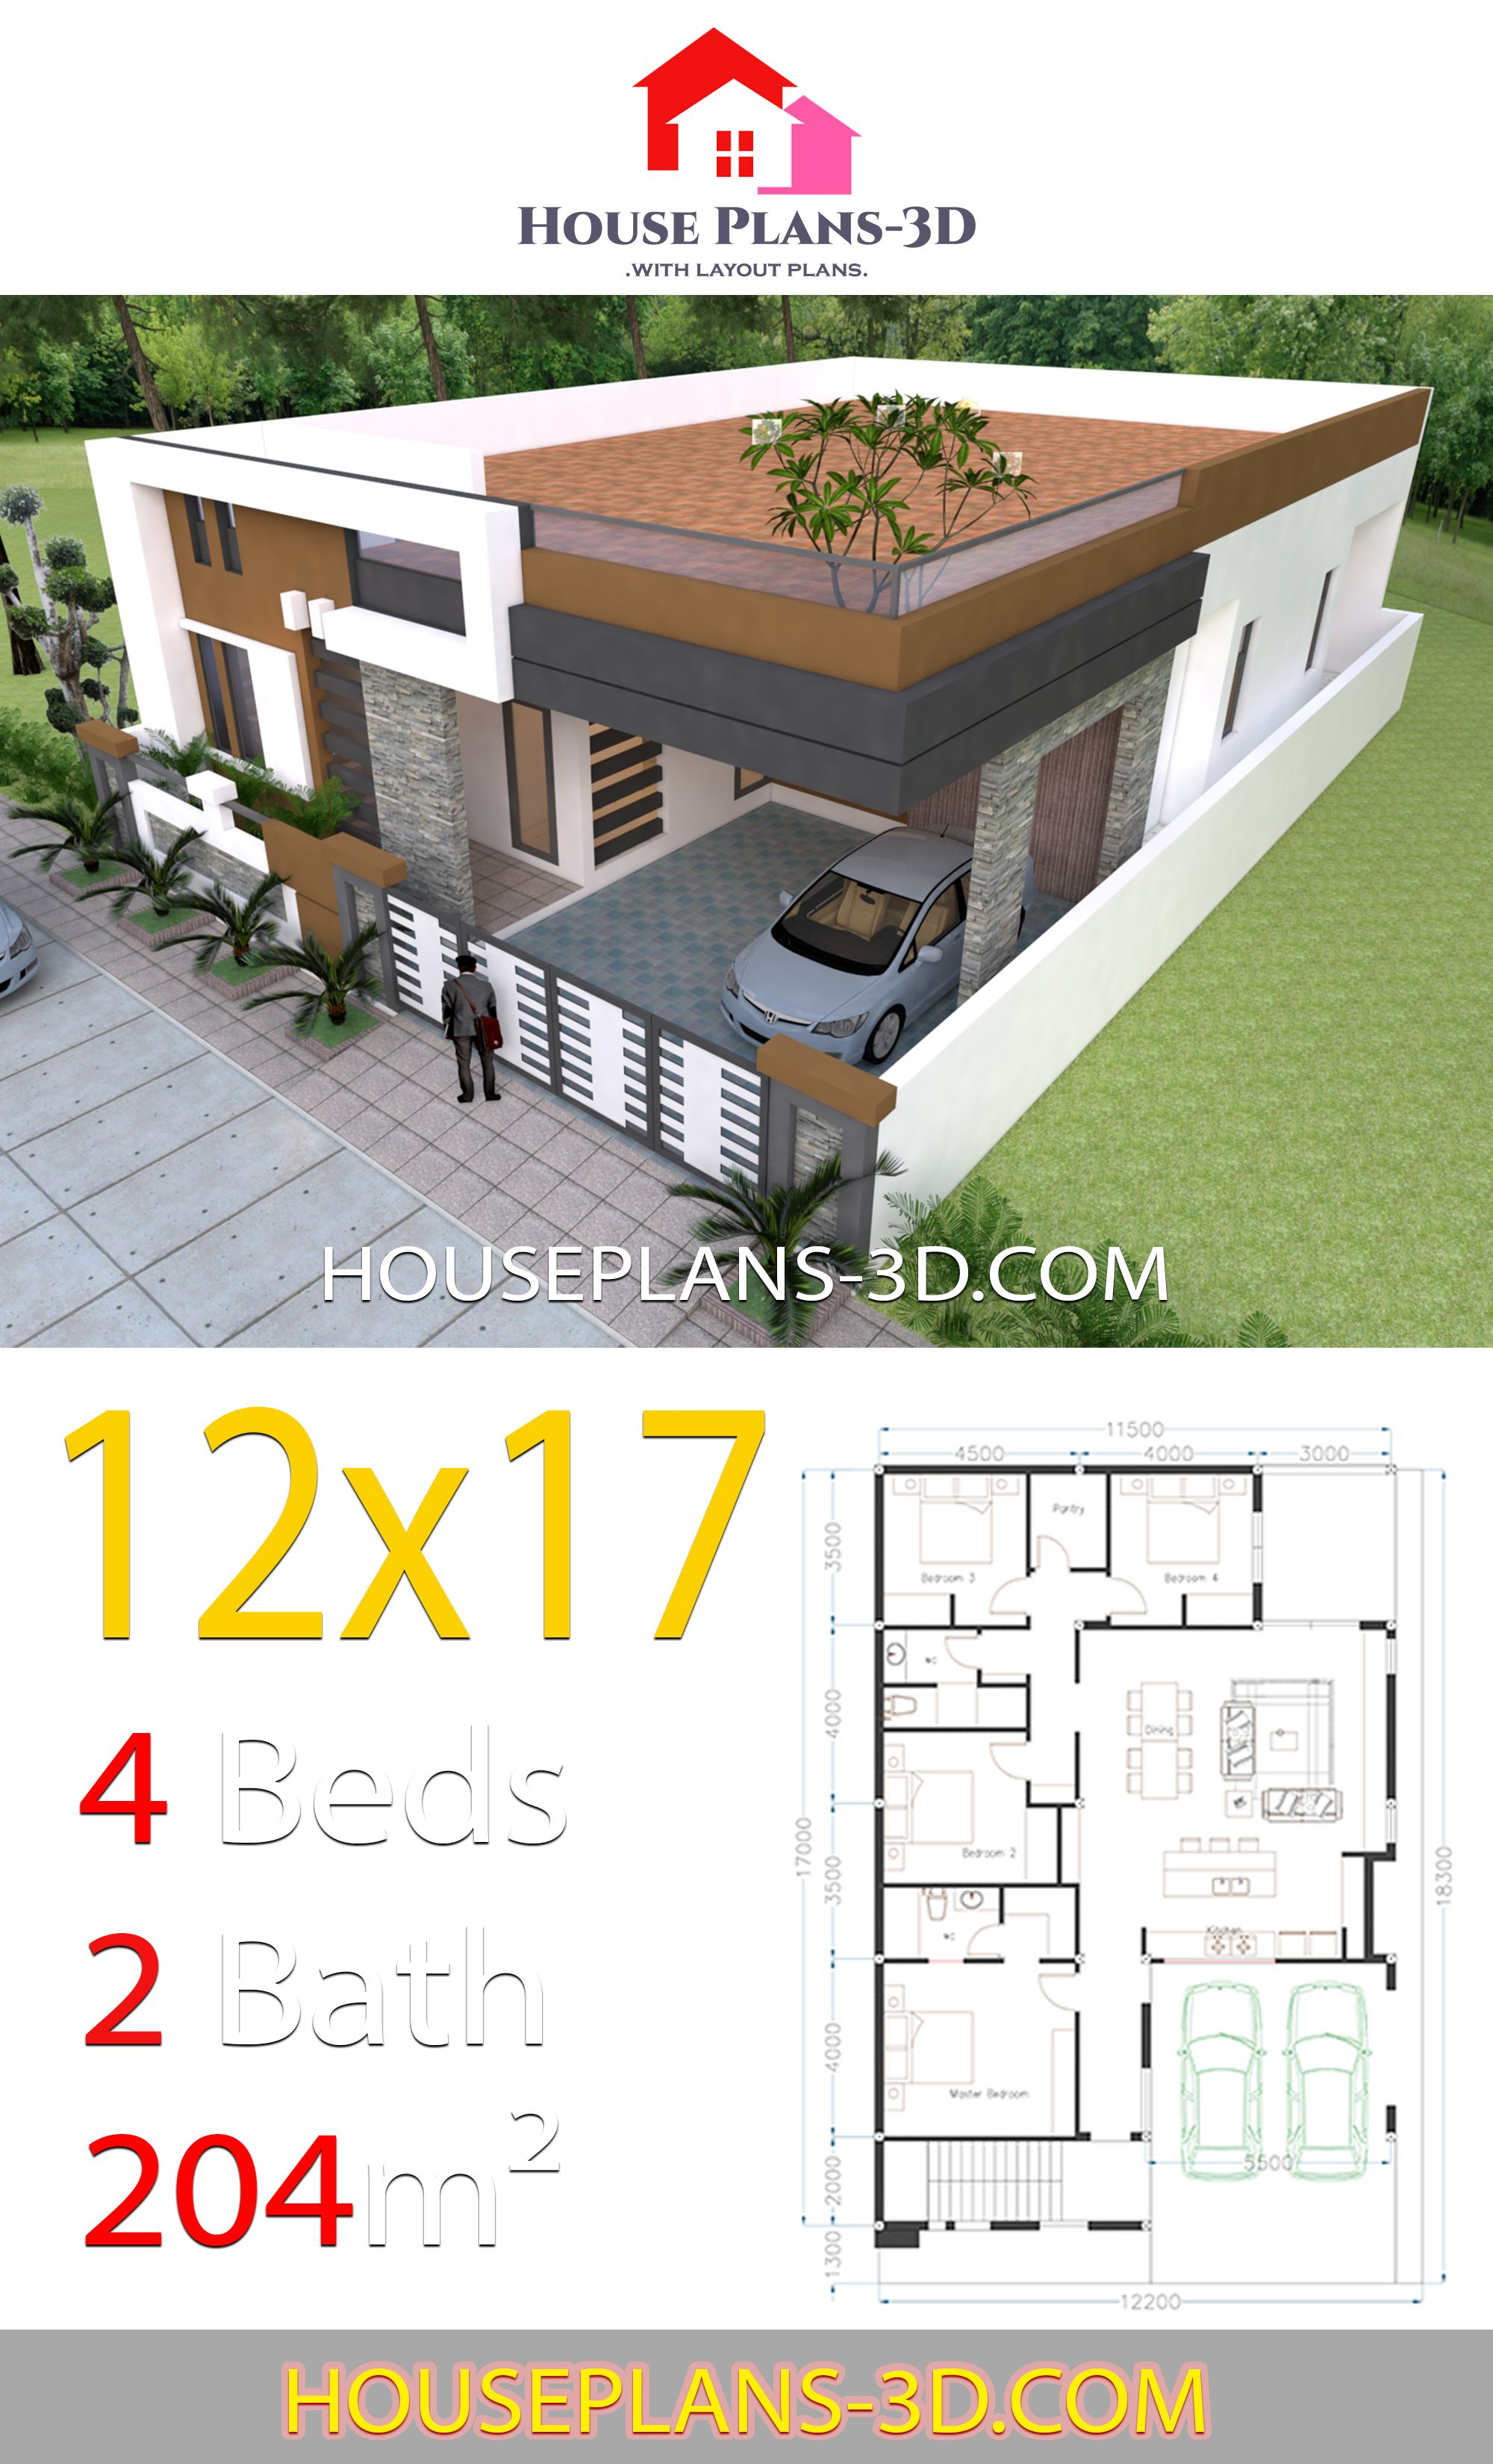 House Design 12x17 With 4 Bedrooms Terrace Roof House Plans 3d In 2020 House Construction Plan Model House Plan House Plan Gallery